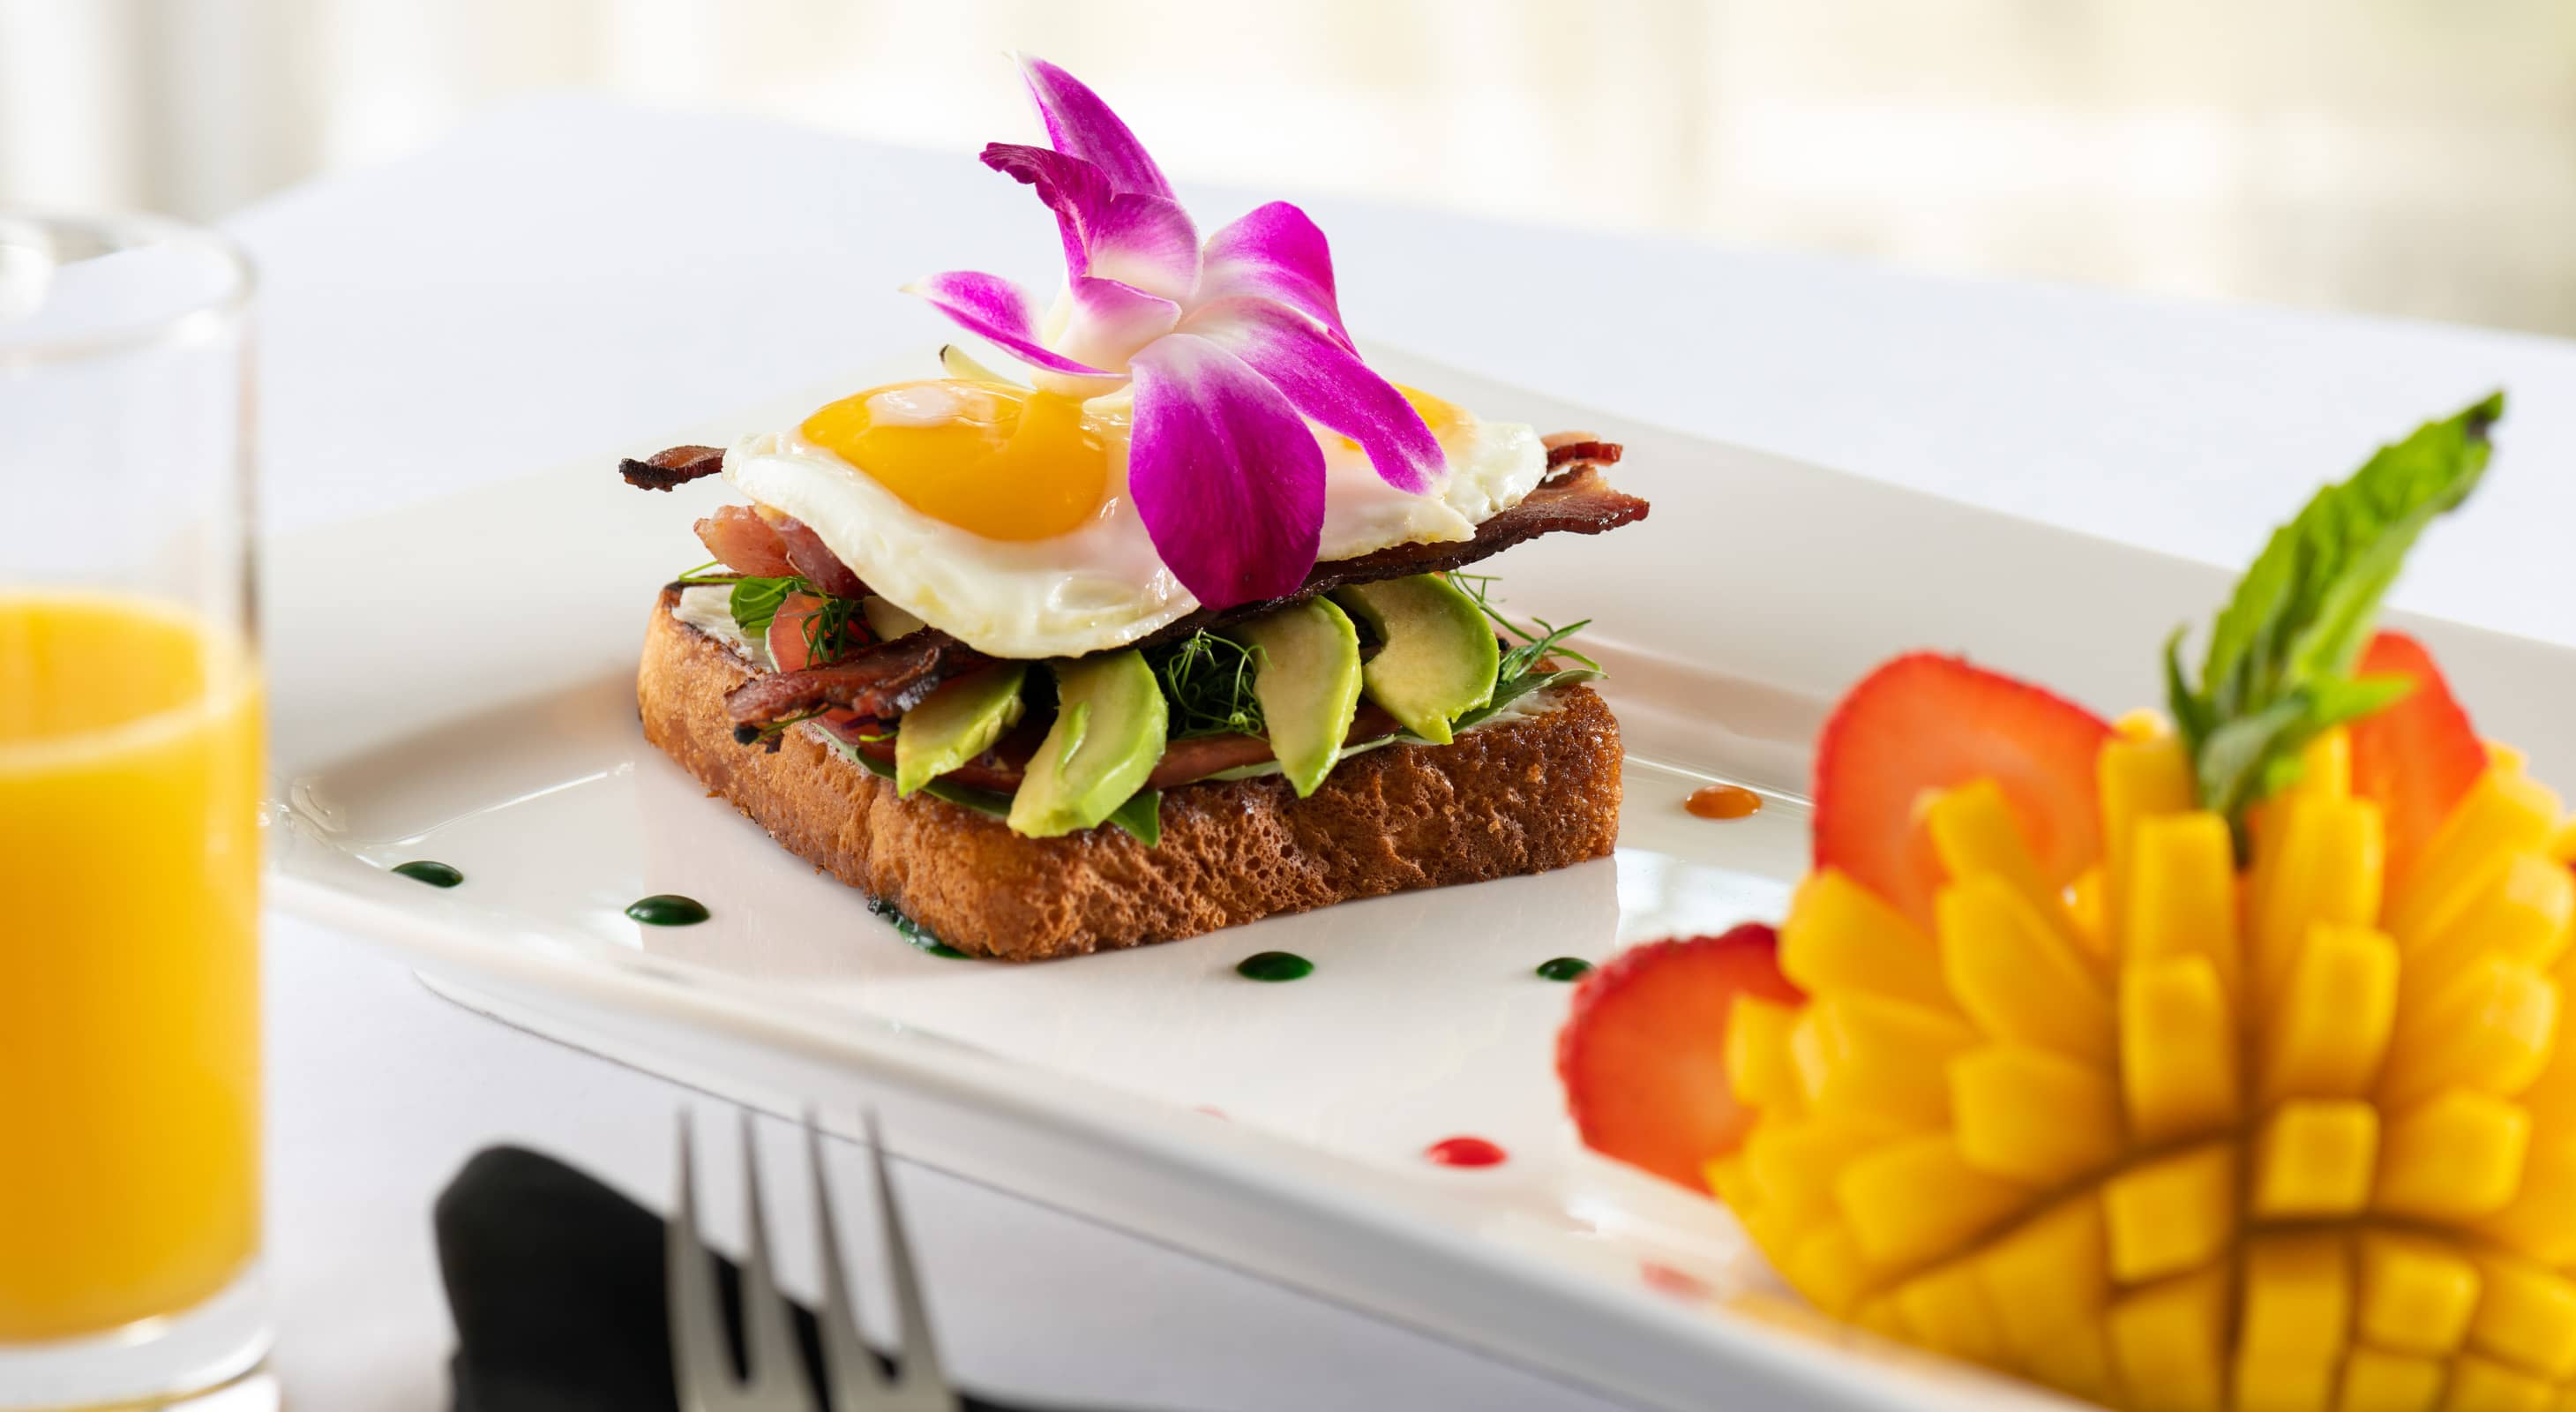 Avocado toast served with mango, strawberries, and orange juice